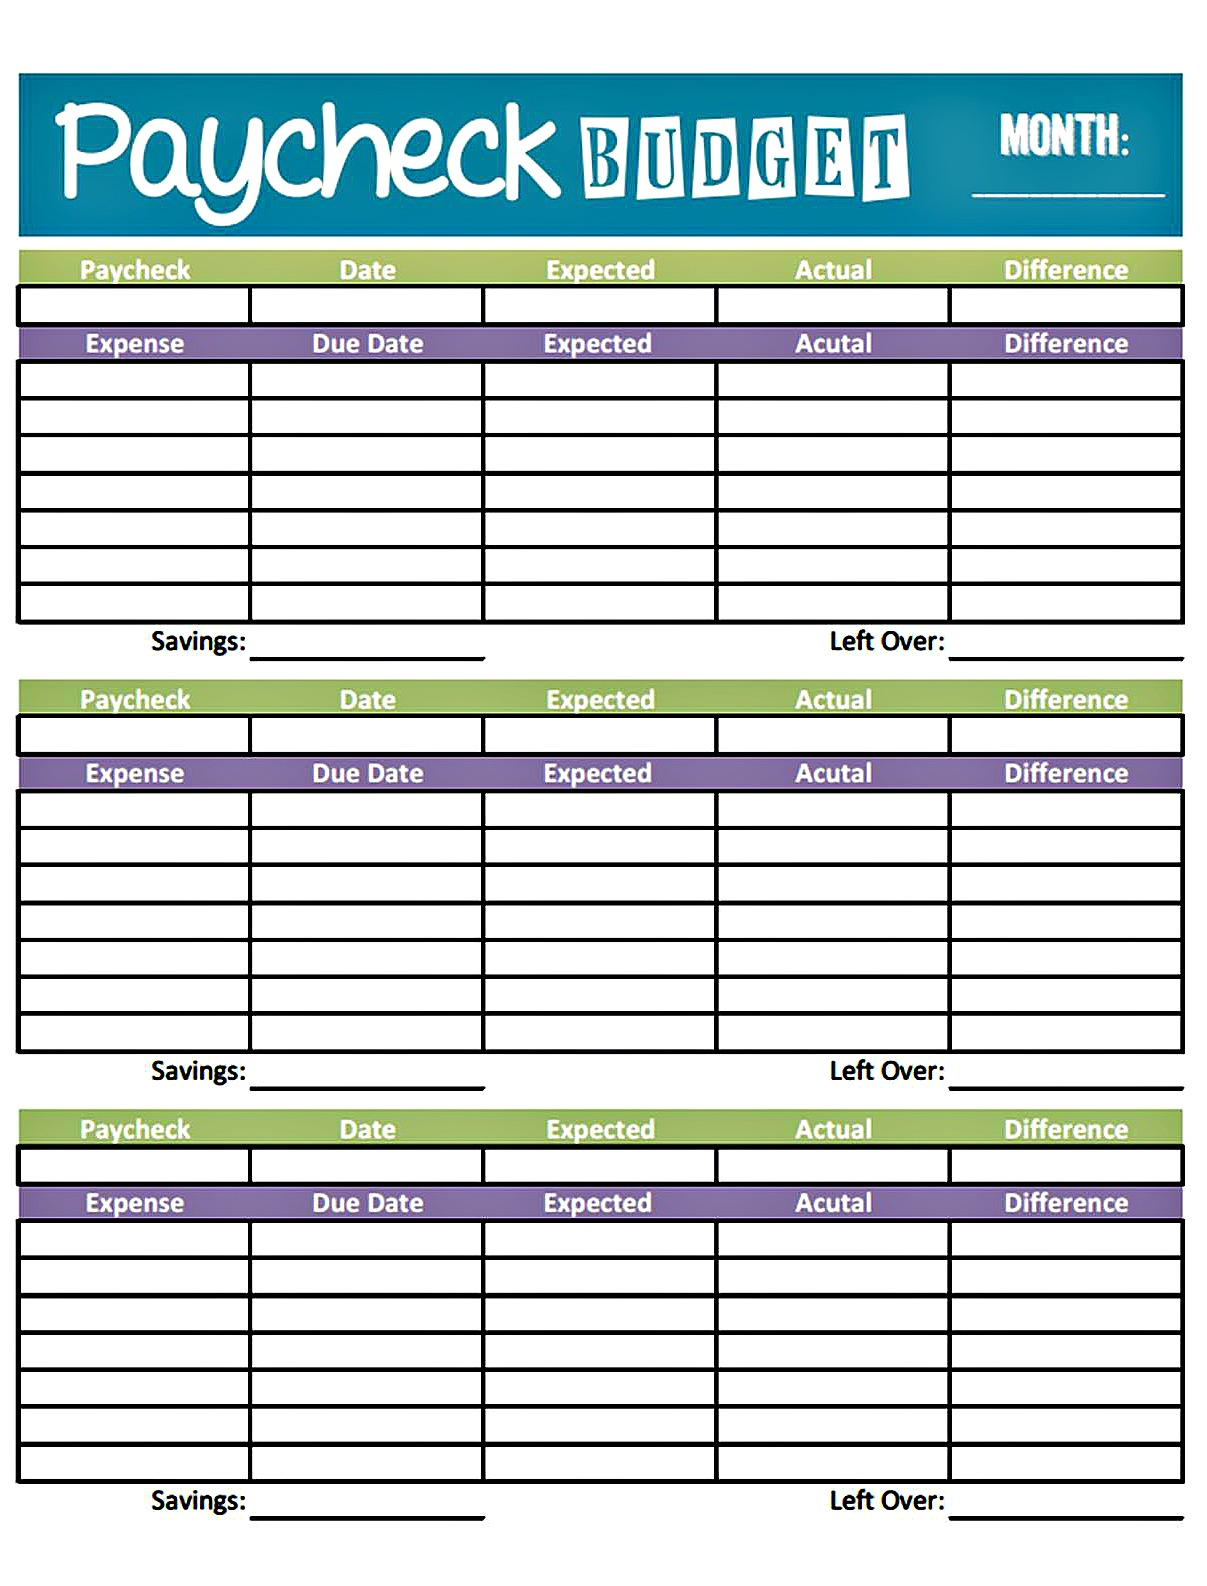 Free Worksheet Free Printable Budget Worksheet free budget template printable best photos of yearly household get paid weekly and charlie gets bi so there 39 s several